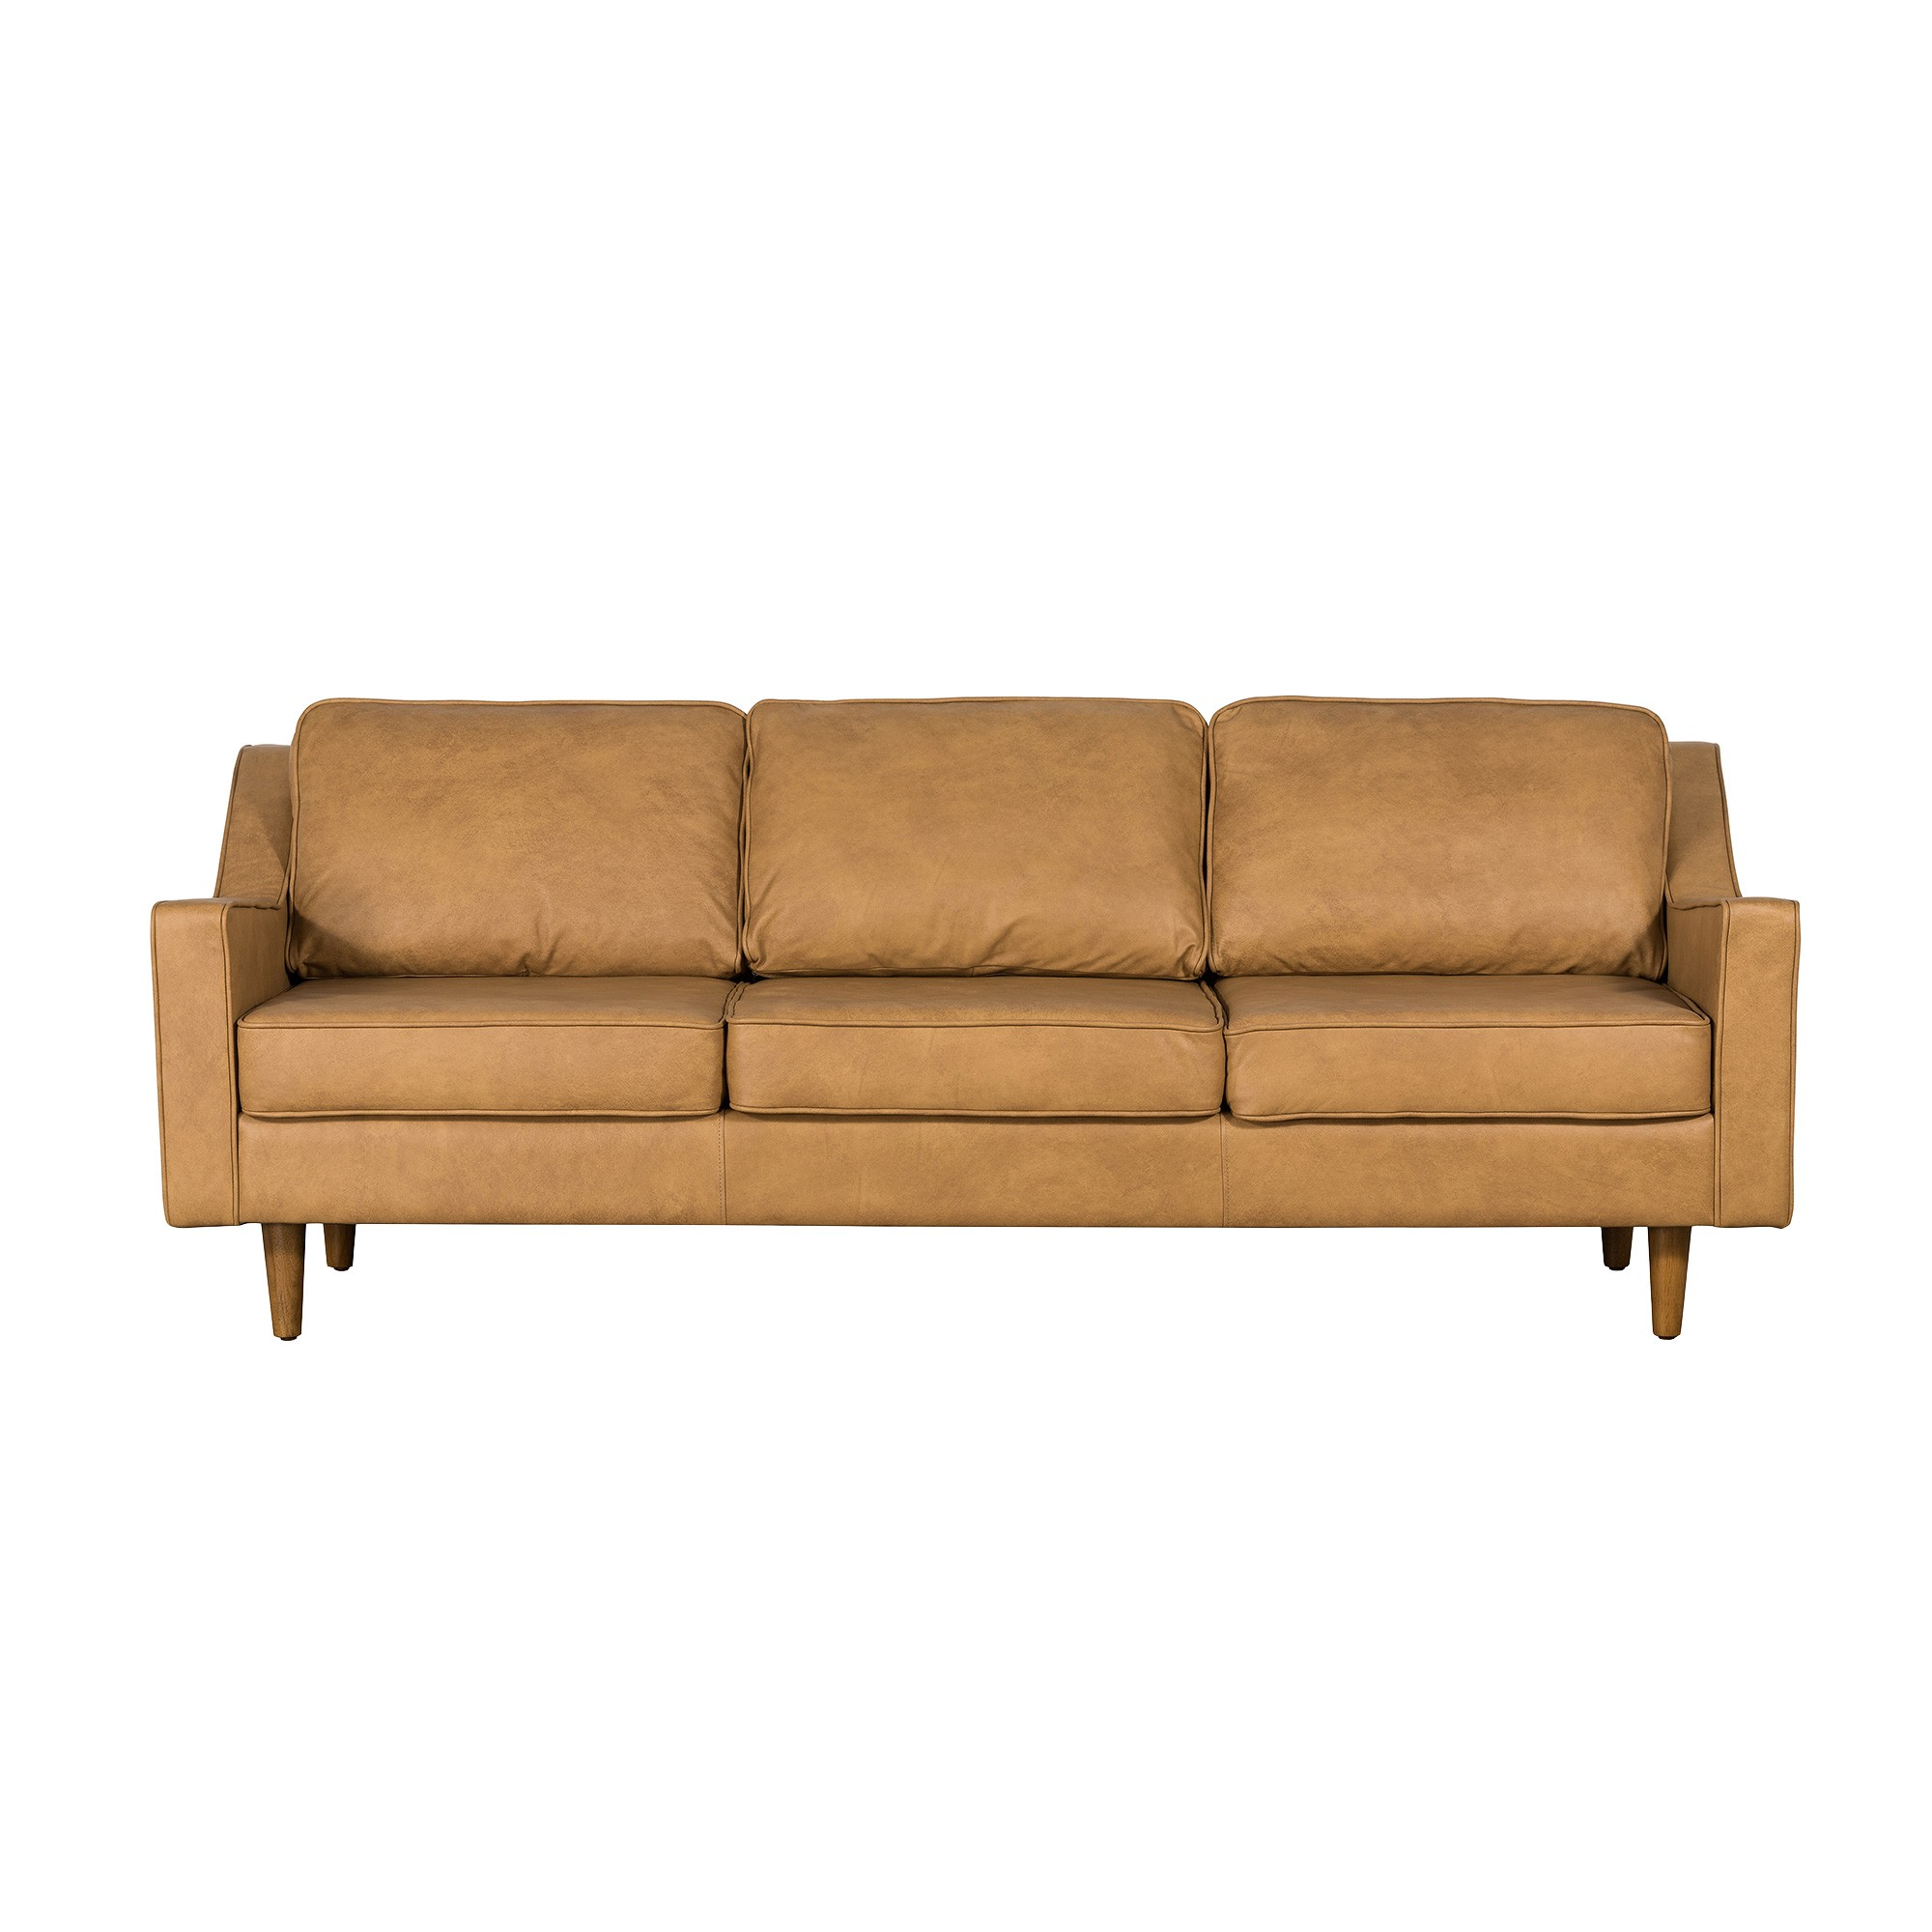 Taylor Italian Leather Sofa, 3 Seater, Tan